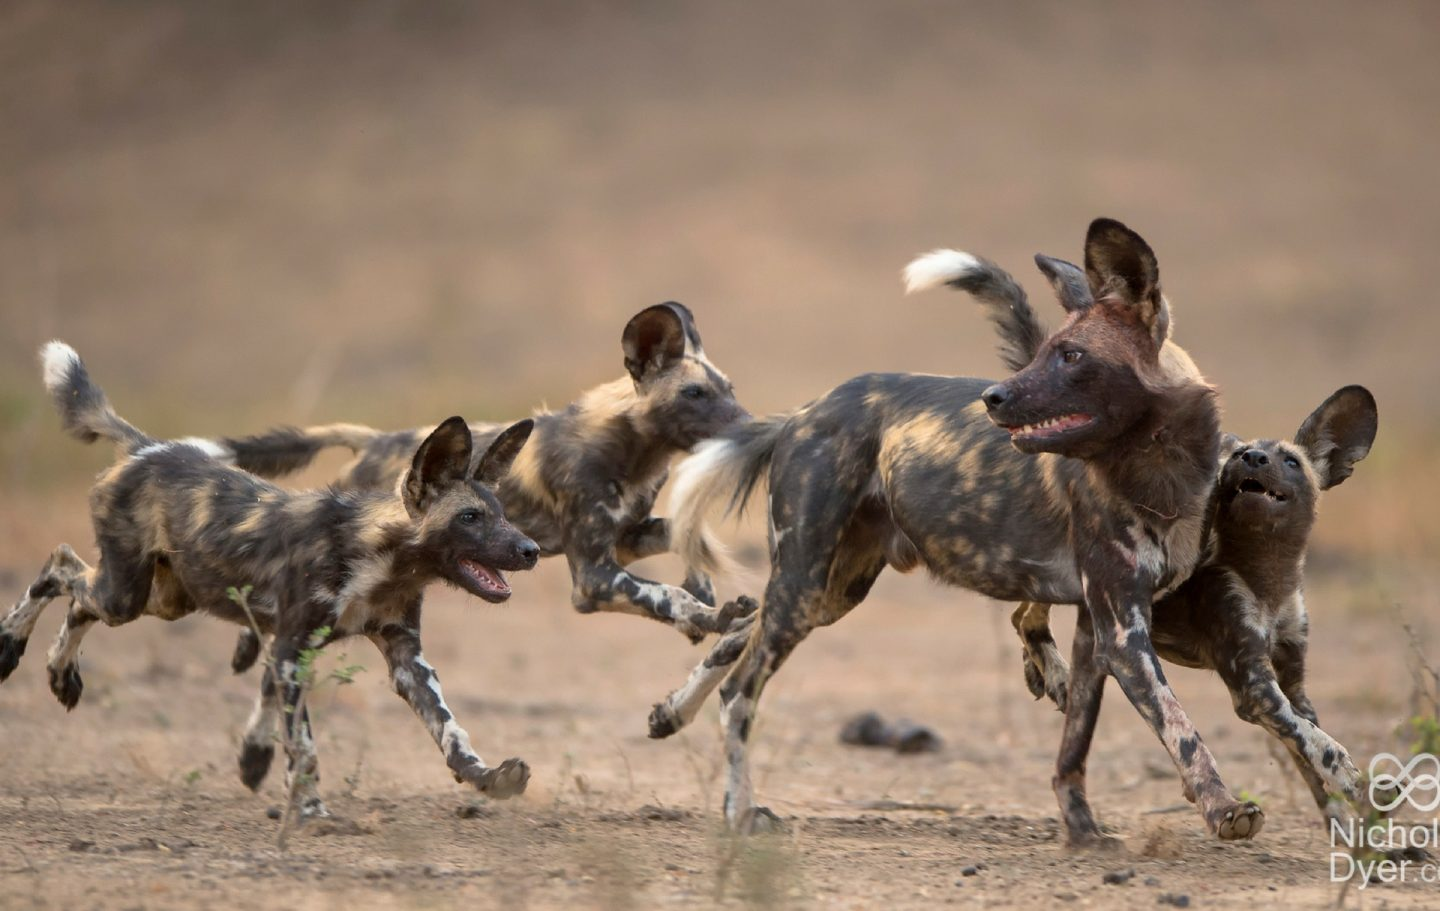 Tusk Trust - The Painted Dog Conservation © Nicholas Dyer